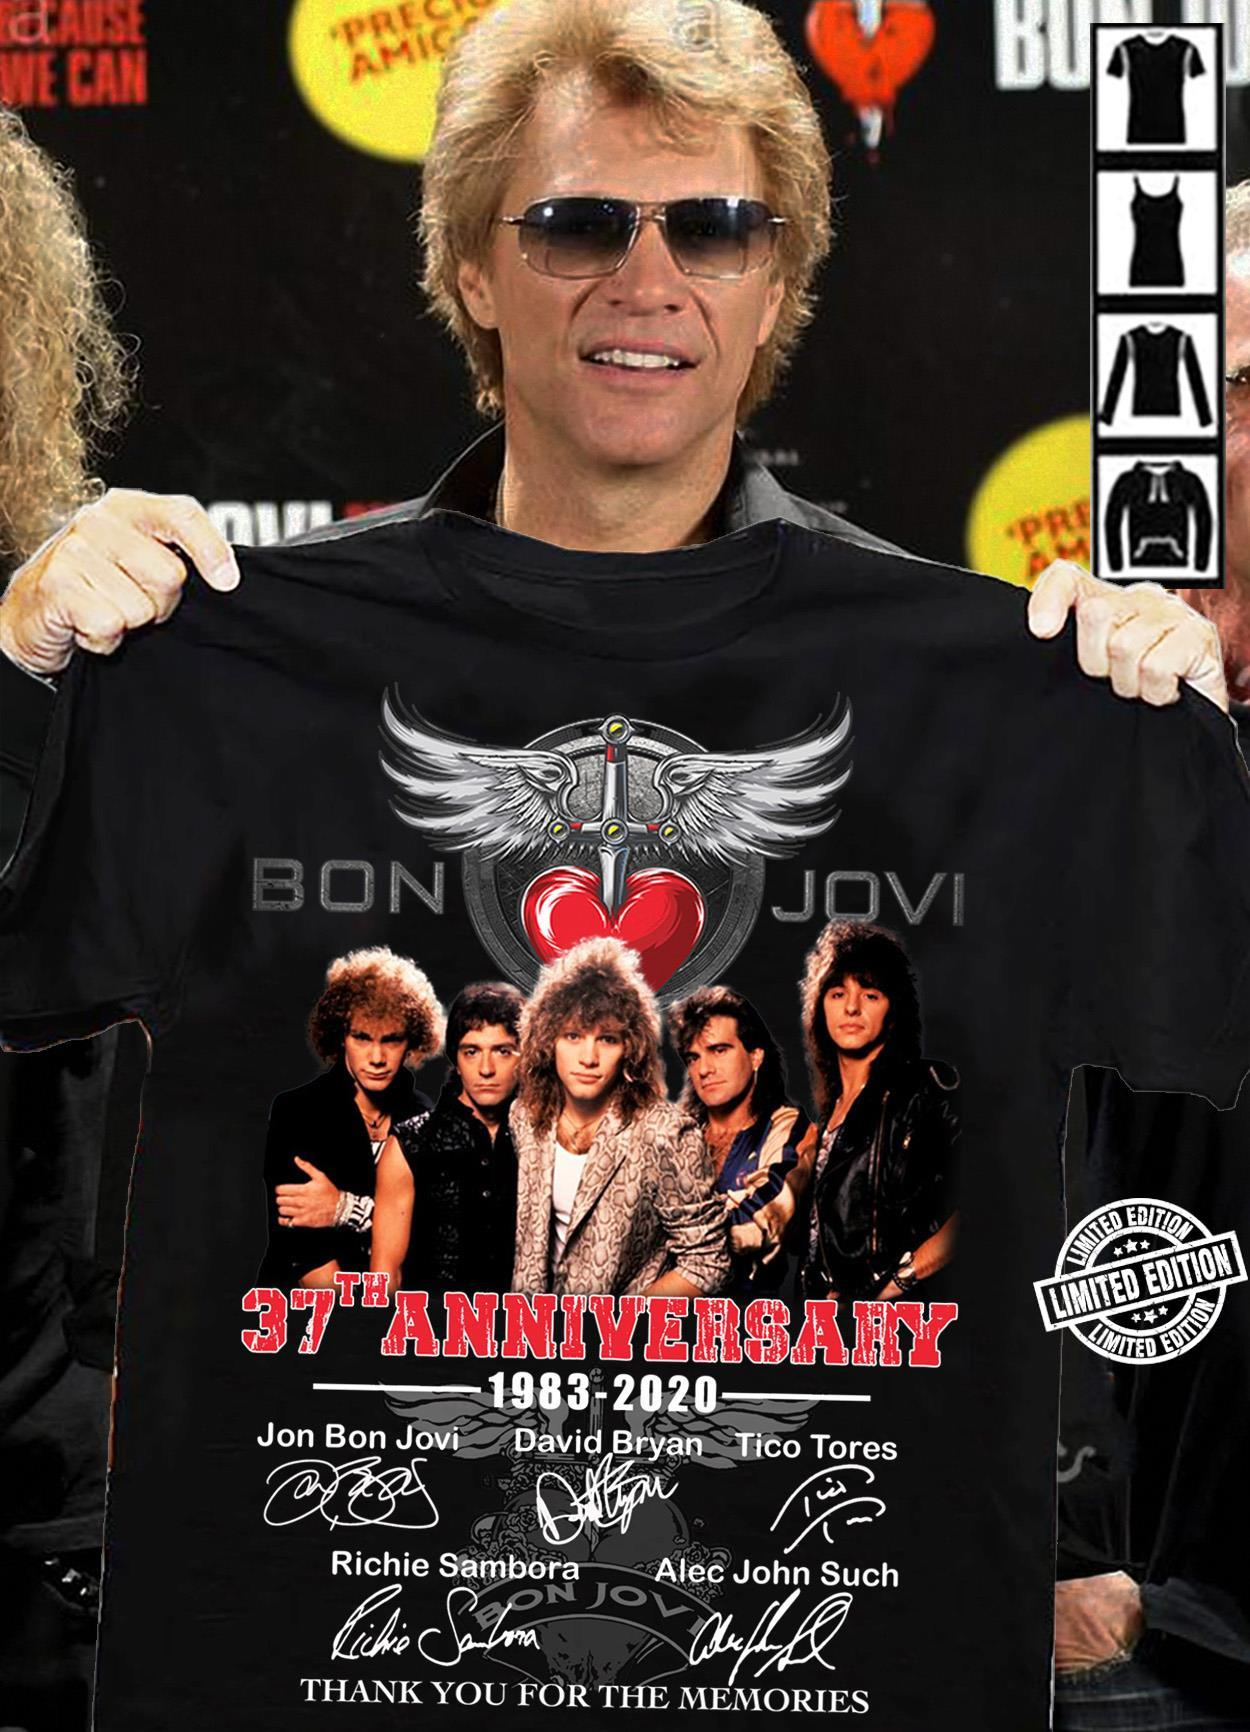 Bon jovi 37th anniversary 1983-2020 all signature thank you for the memories shirt